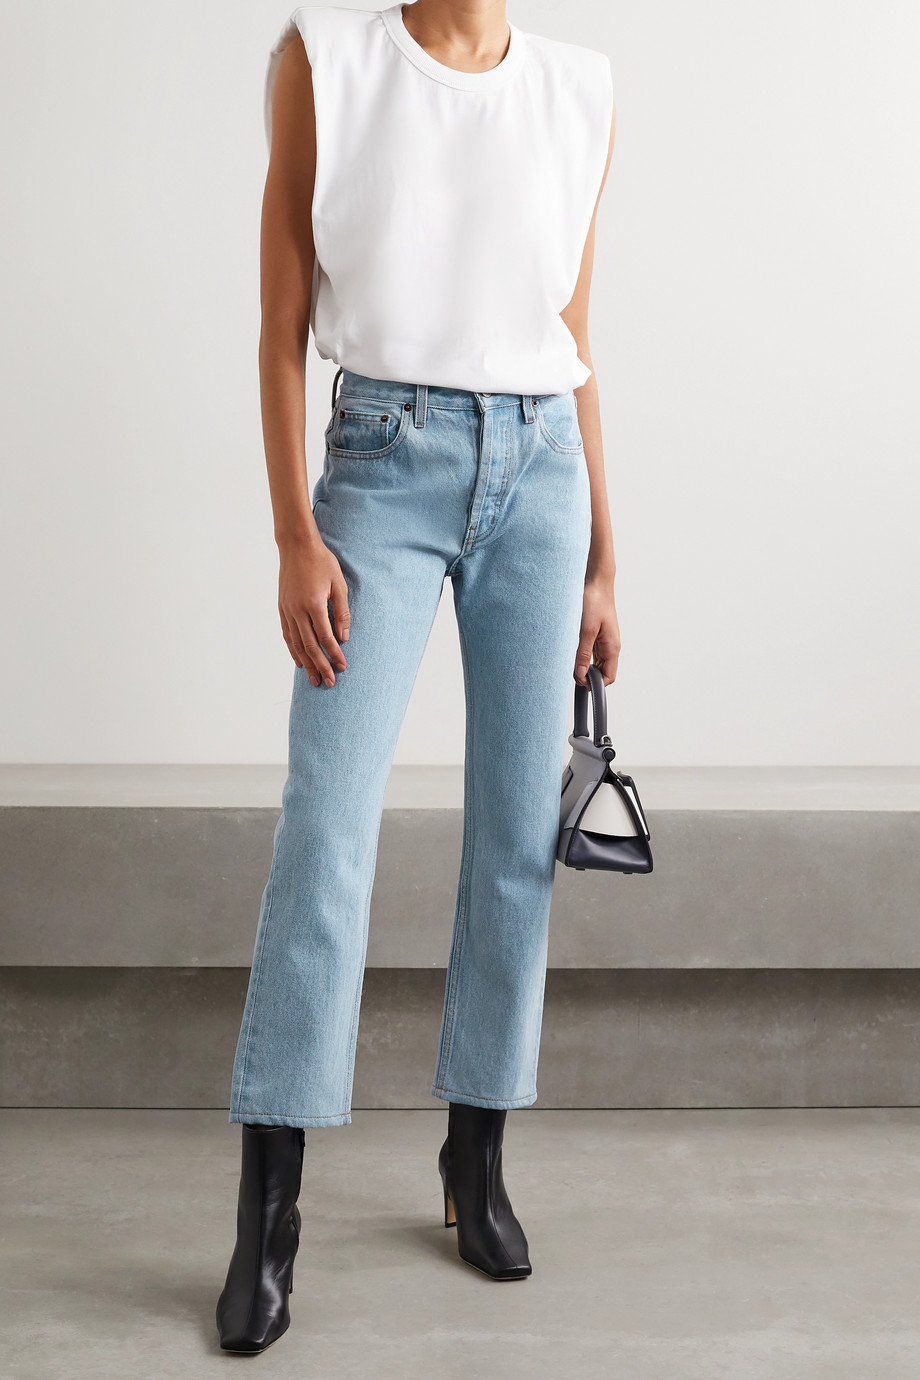 Still Here Shibori Tate cropped high-rise straight-leg jeans